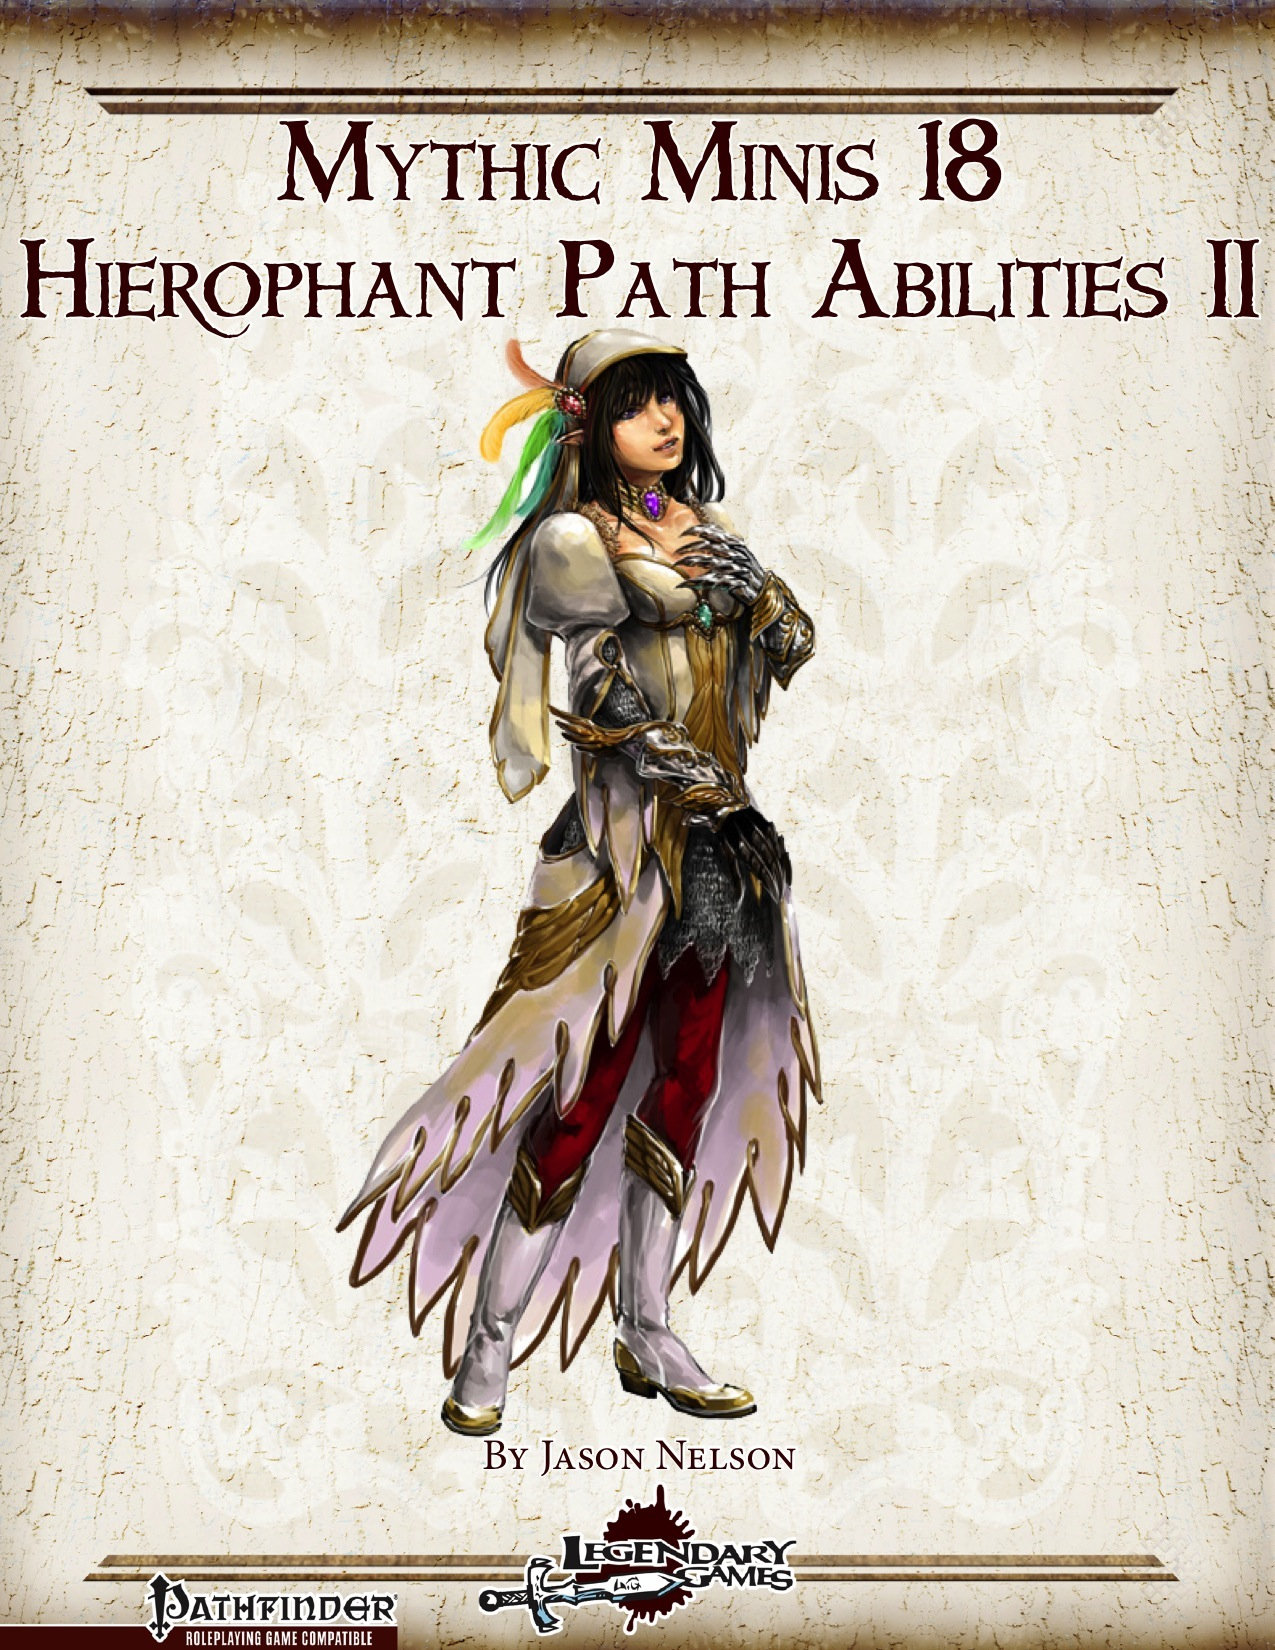 Mythic Mini - Hierophant Path Abilities II cover